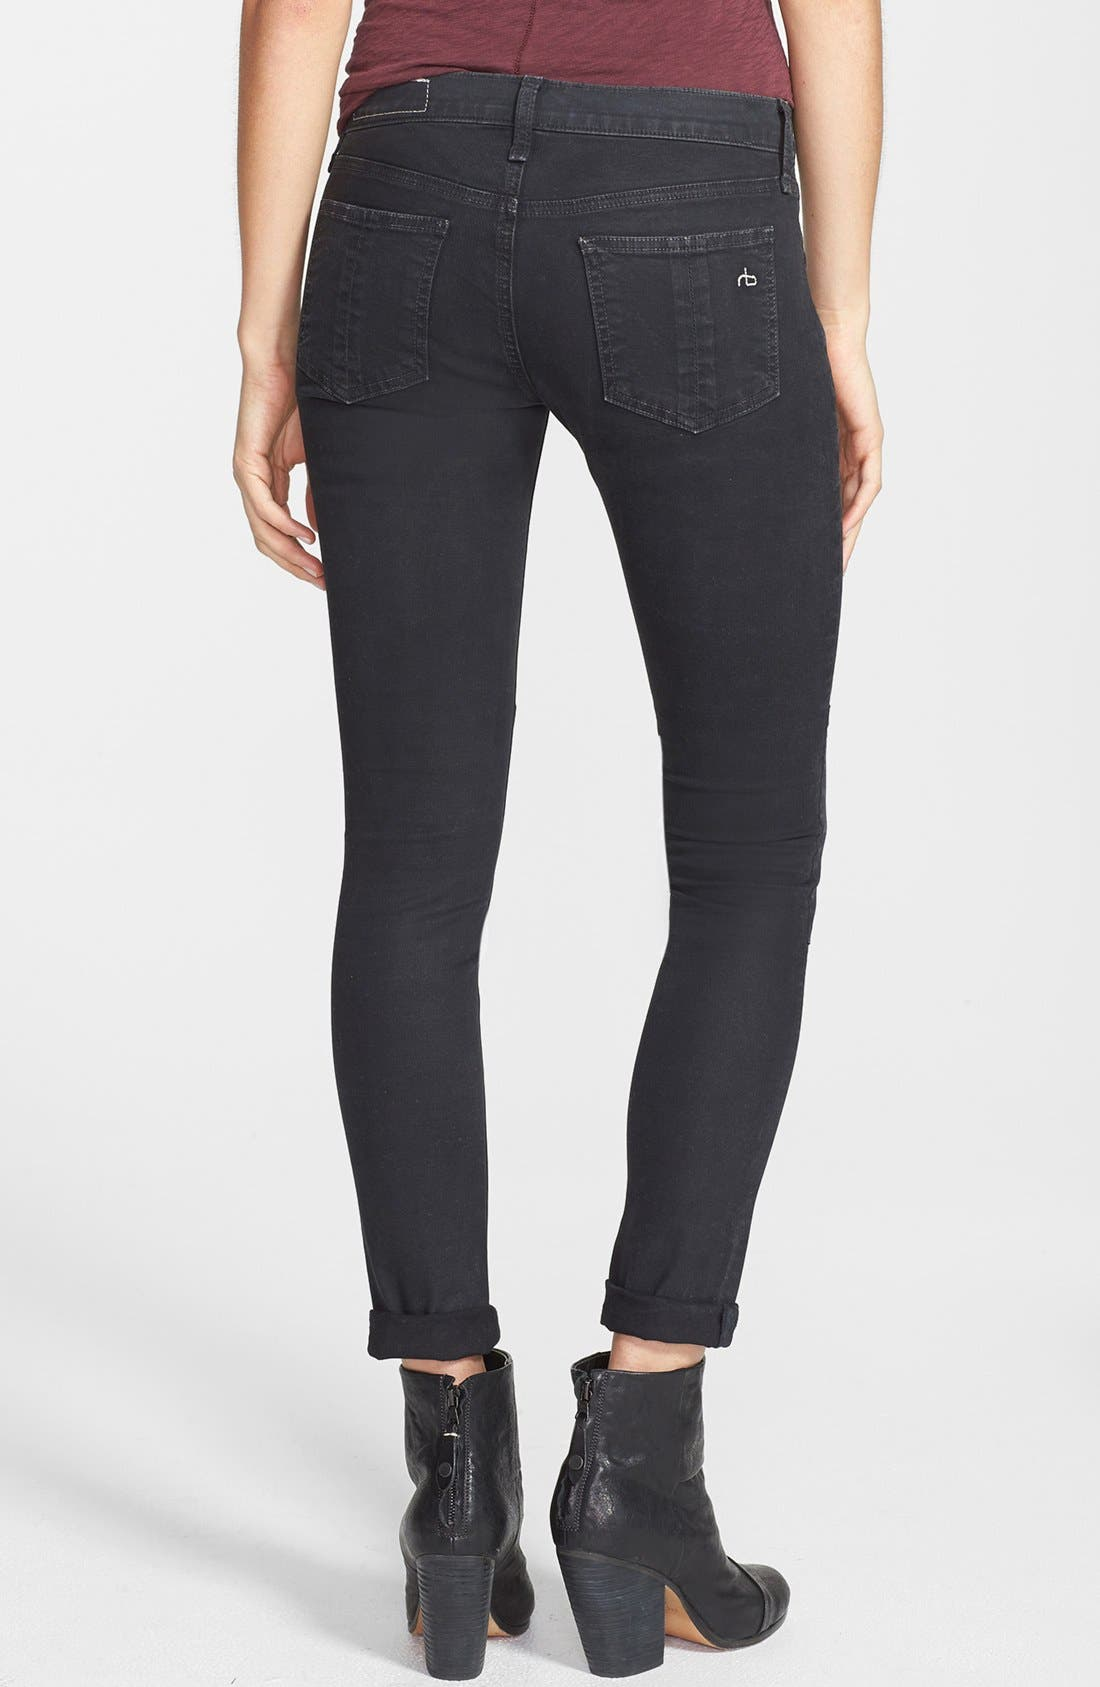 Alternate Image 2  - rag & bone/JEAN 'Ridley' Moto Skinny Jeans (Wax Black)